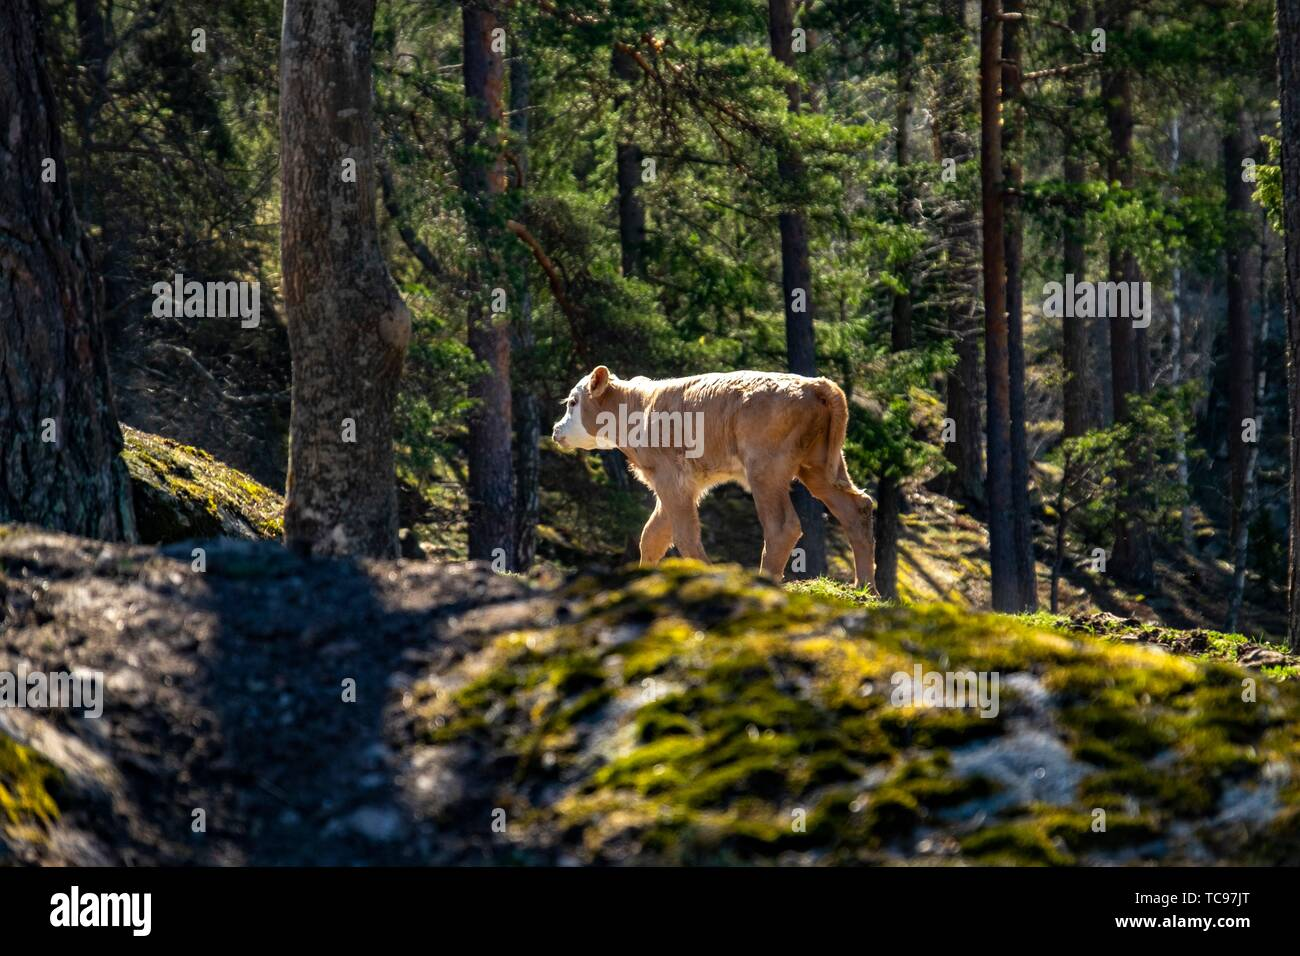 Newborn calf exploring the forest in Sweden. - Stock Image